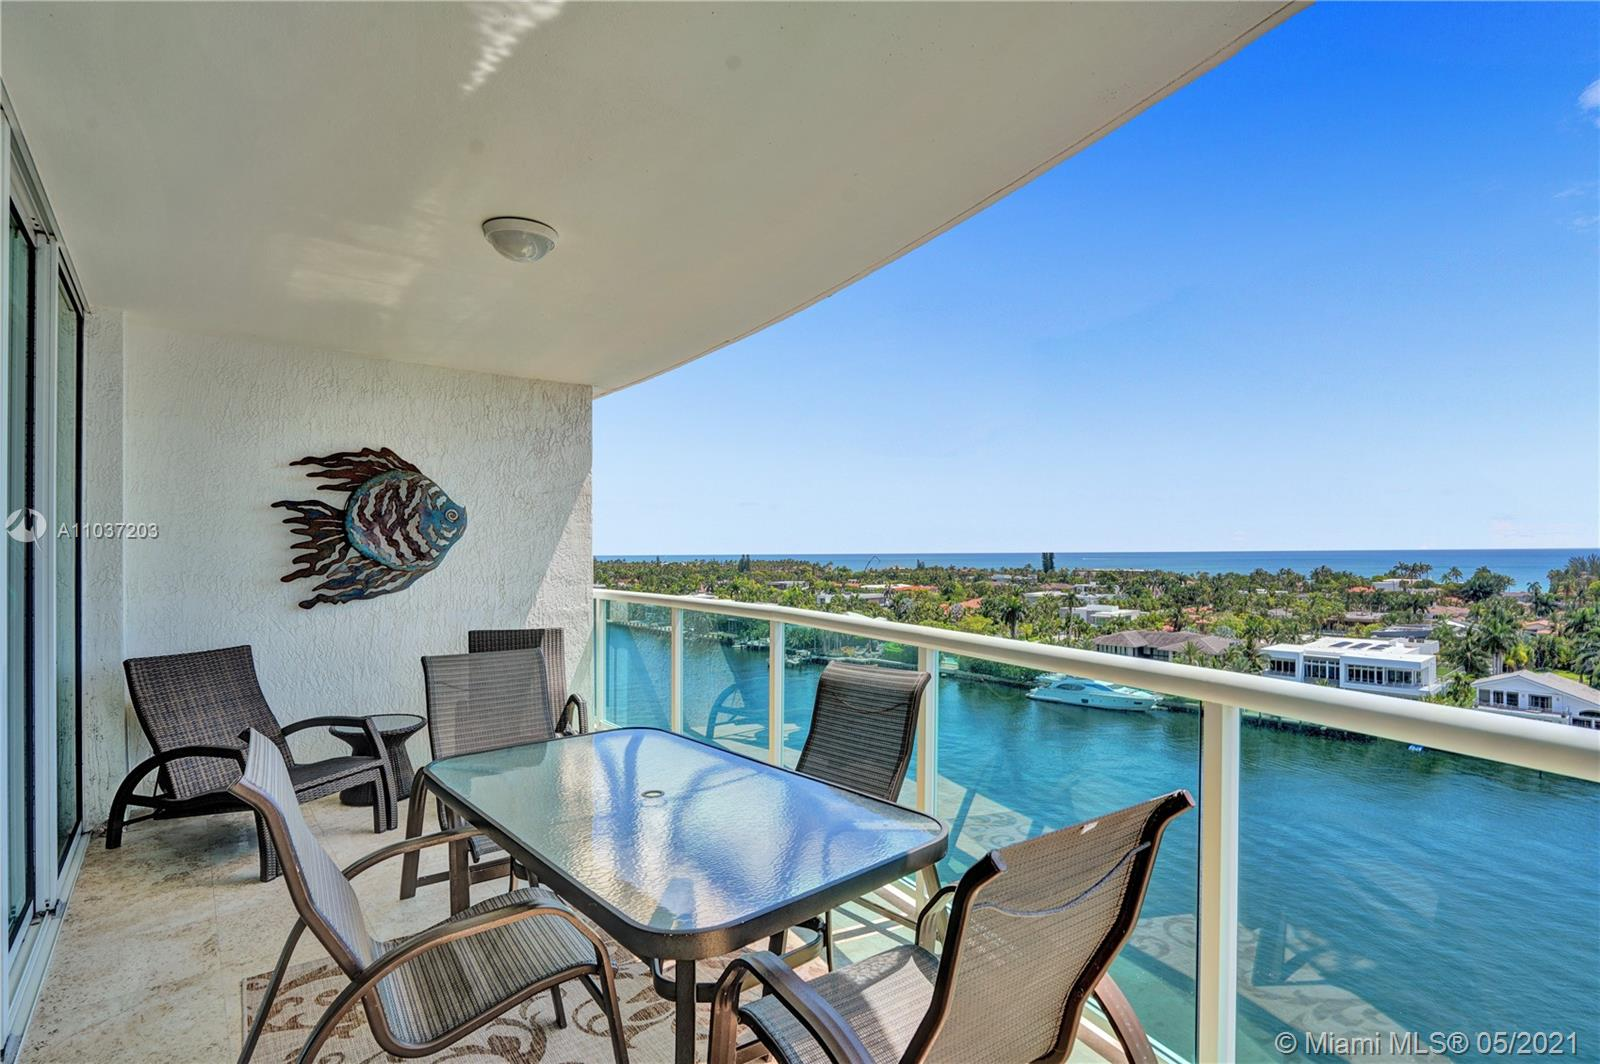 Photo of 20201 Country Club Dr #1006, Aventura, Florida, 33180 - Views of Sunny Isles.